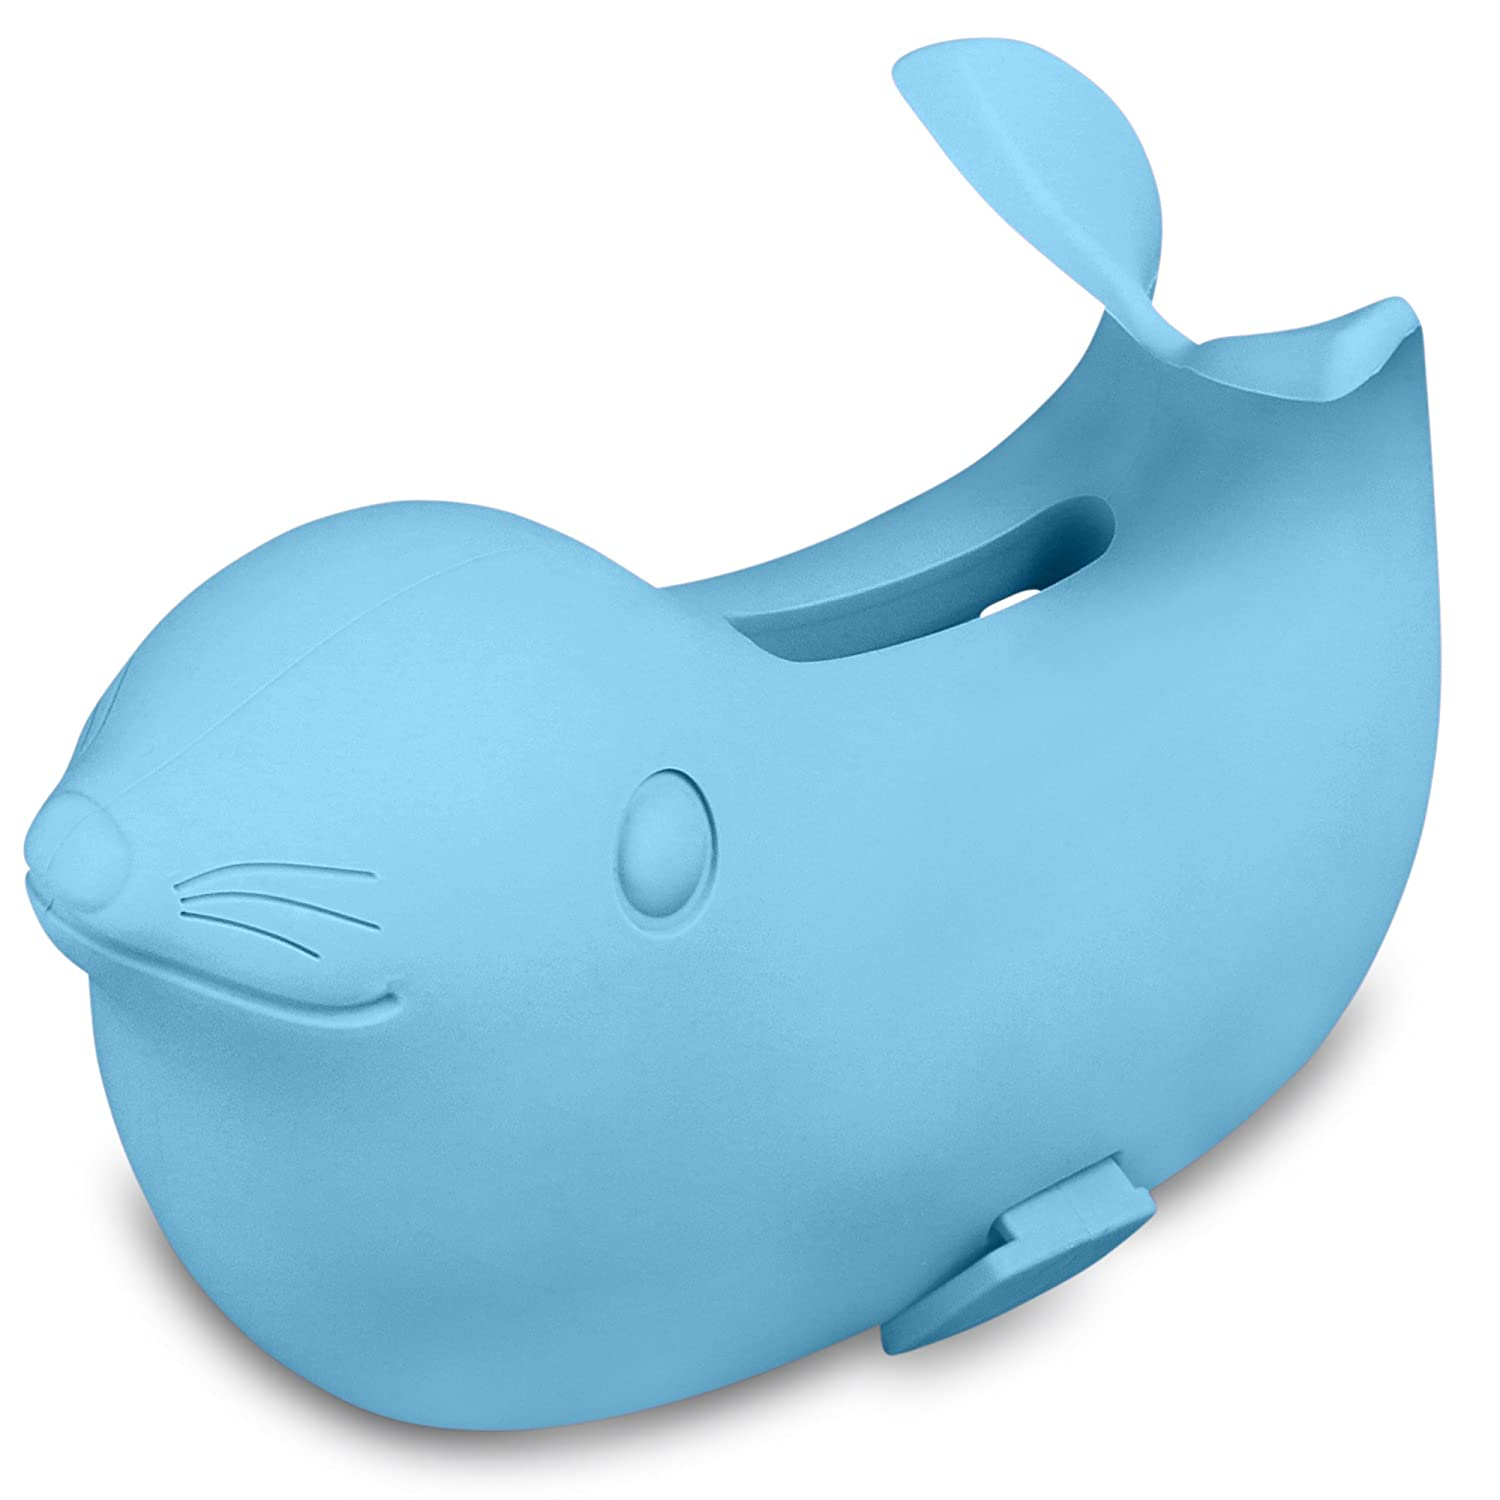 Gadgetmine Bath Spout Cover | 100% Silicone | Baby Bathroom Safety Toy B-16